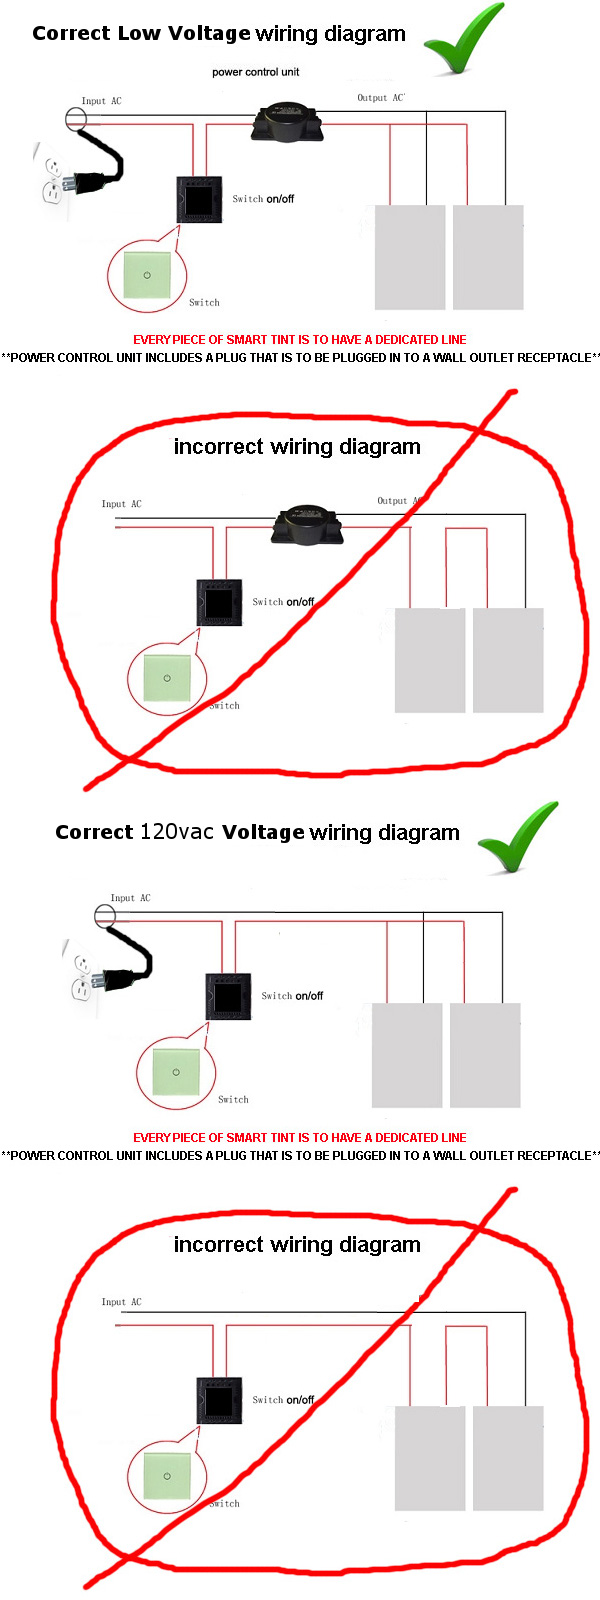 Smart Tint Tuned Power Control Unit with remote control – Ac Outlet Wiring Diagram